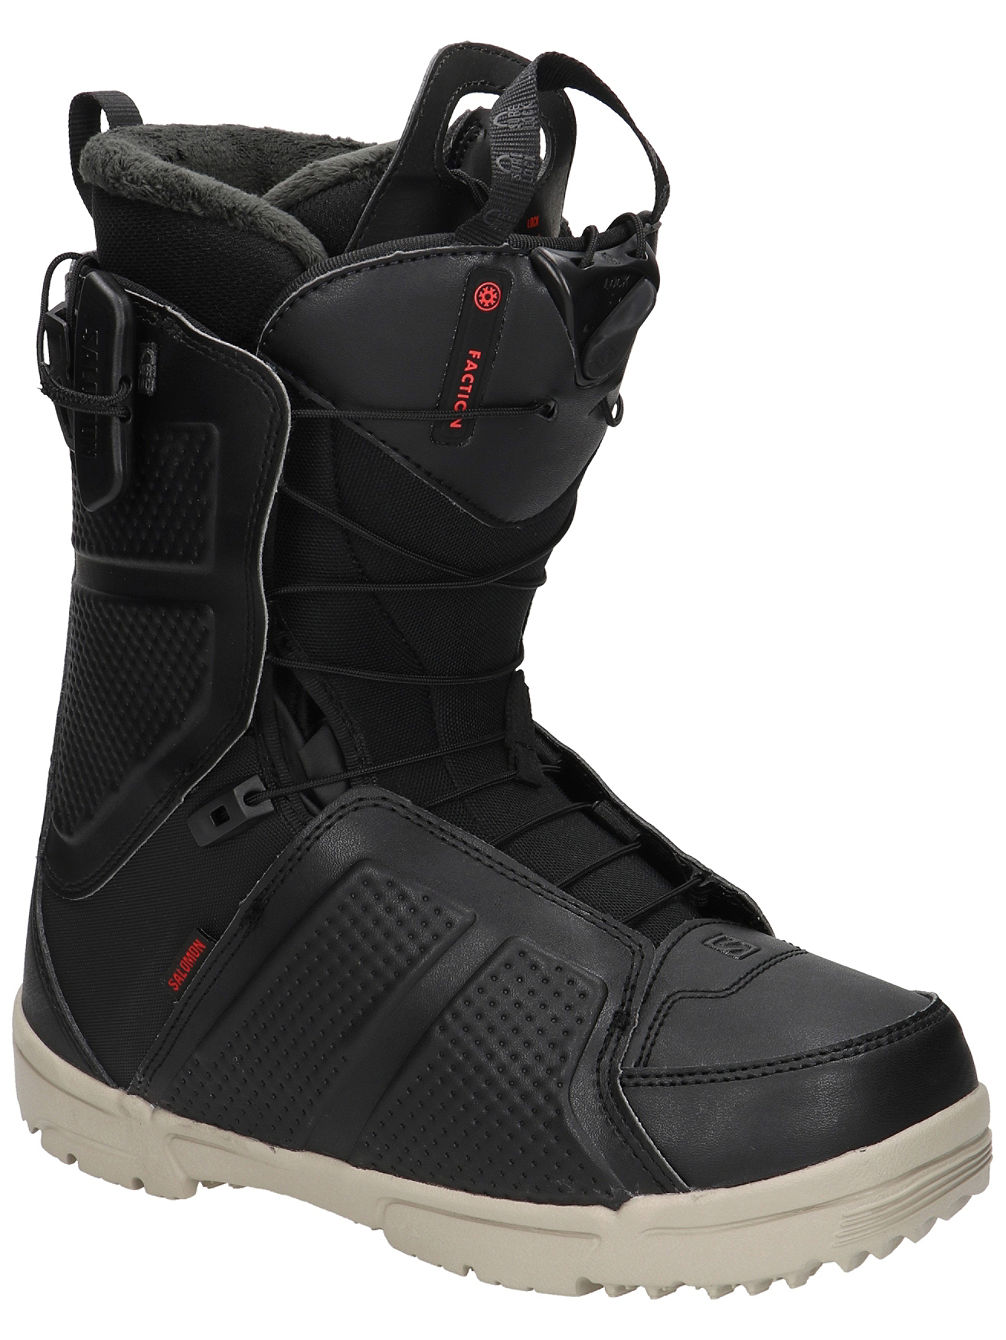 Faction 2018 Snowboardboots